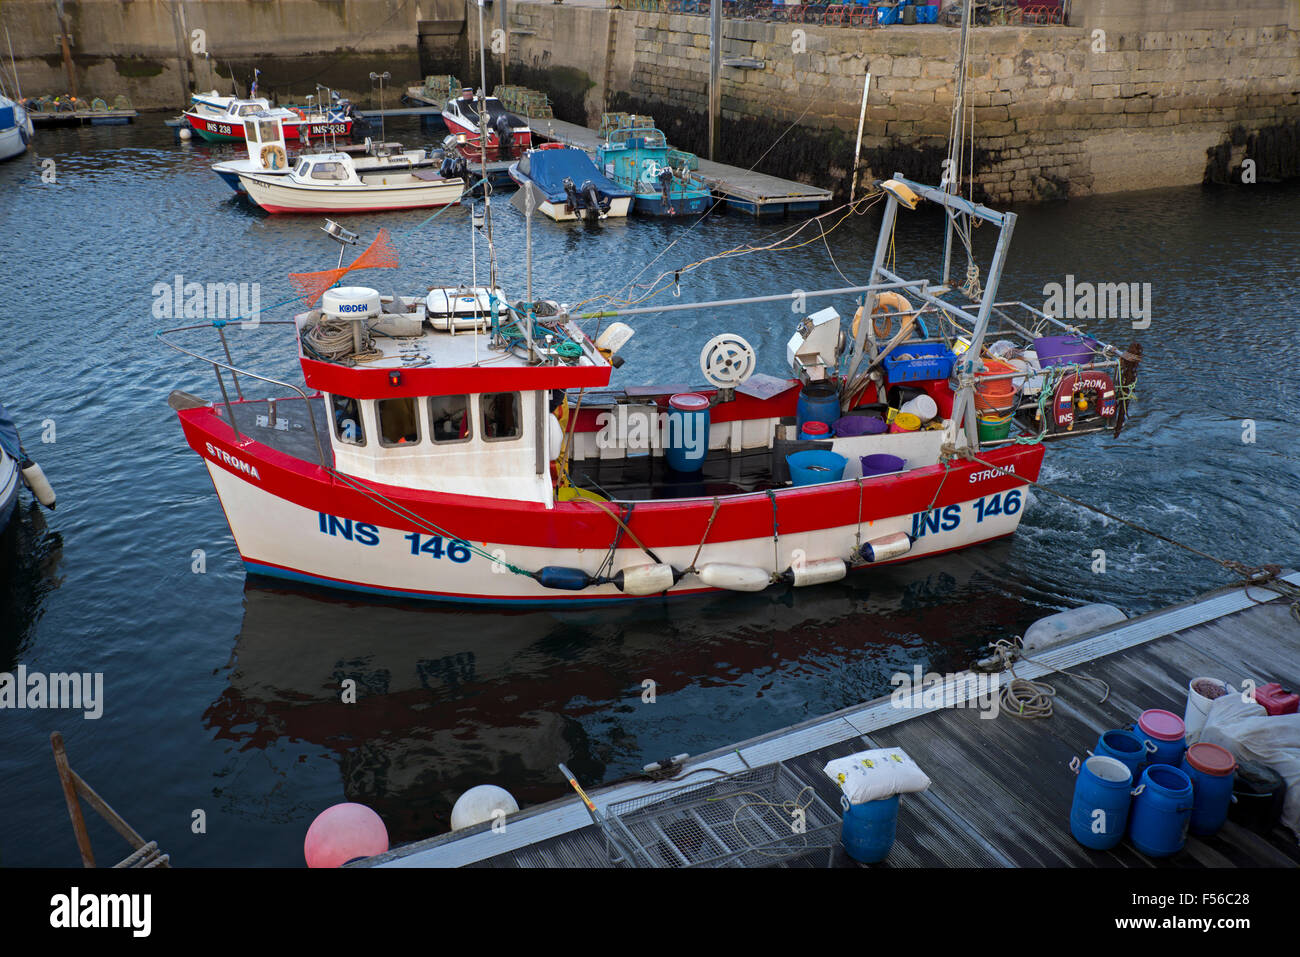 The fishing boat Stroma returning to Lossiemouth Harbour in Morayshire, Scotland, UK. - Stock Image